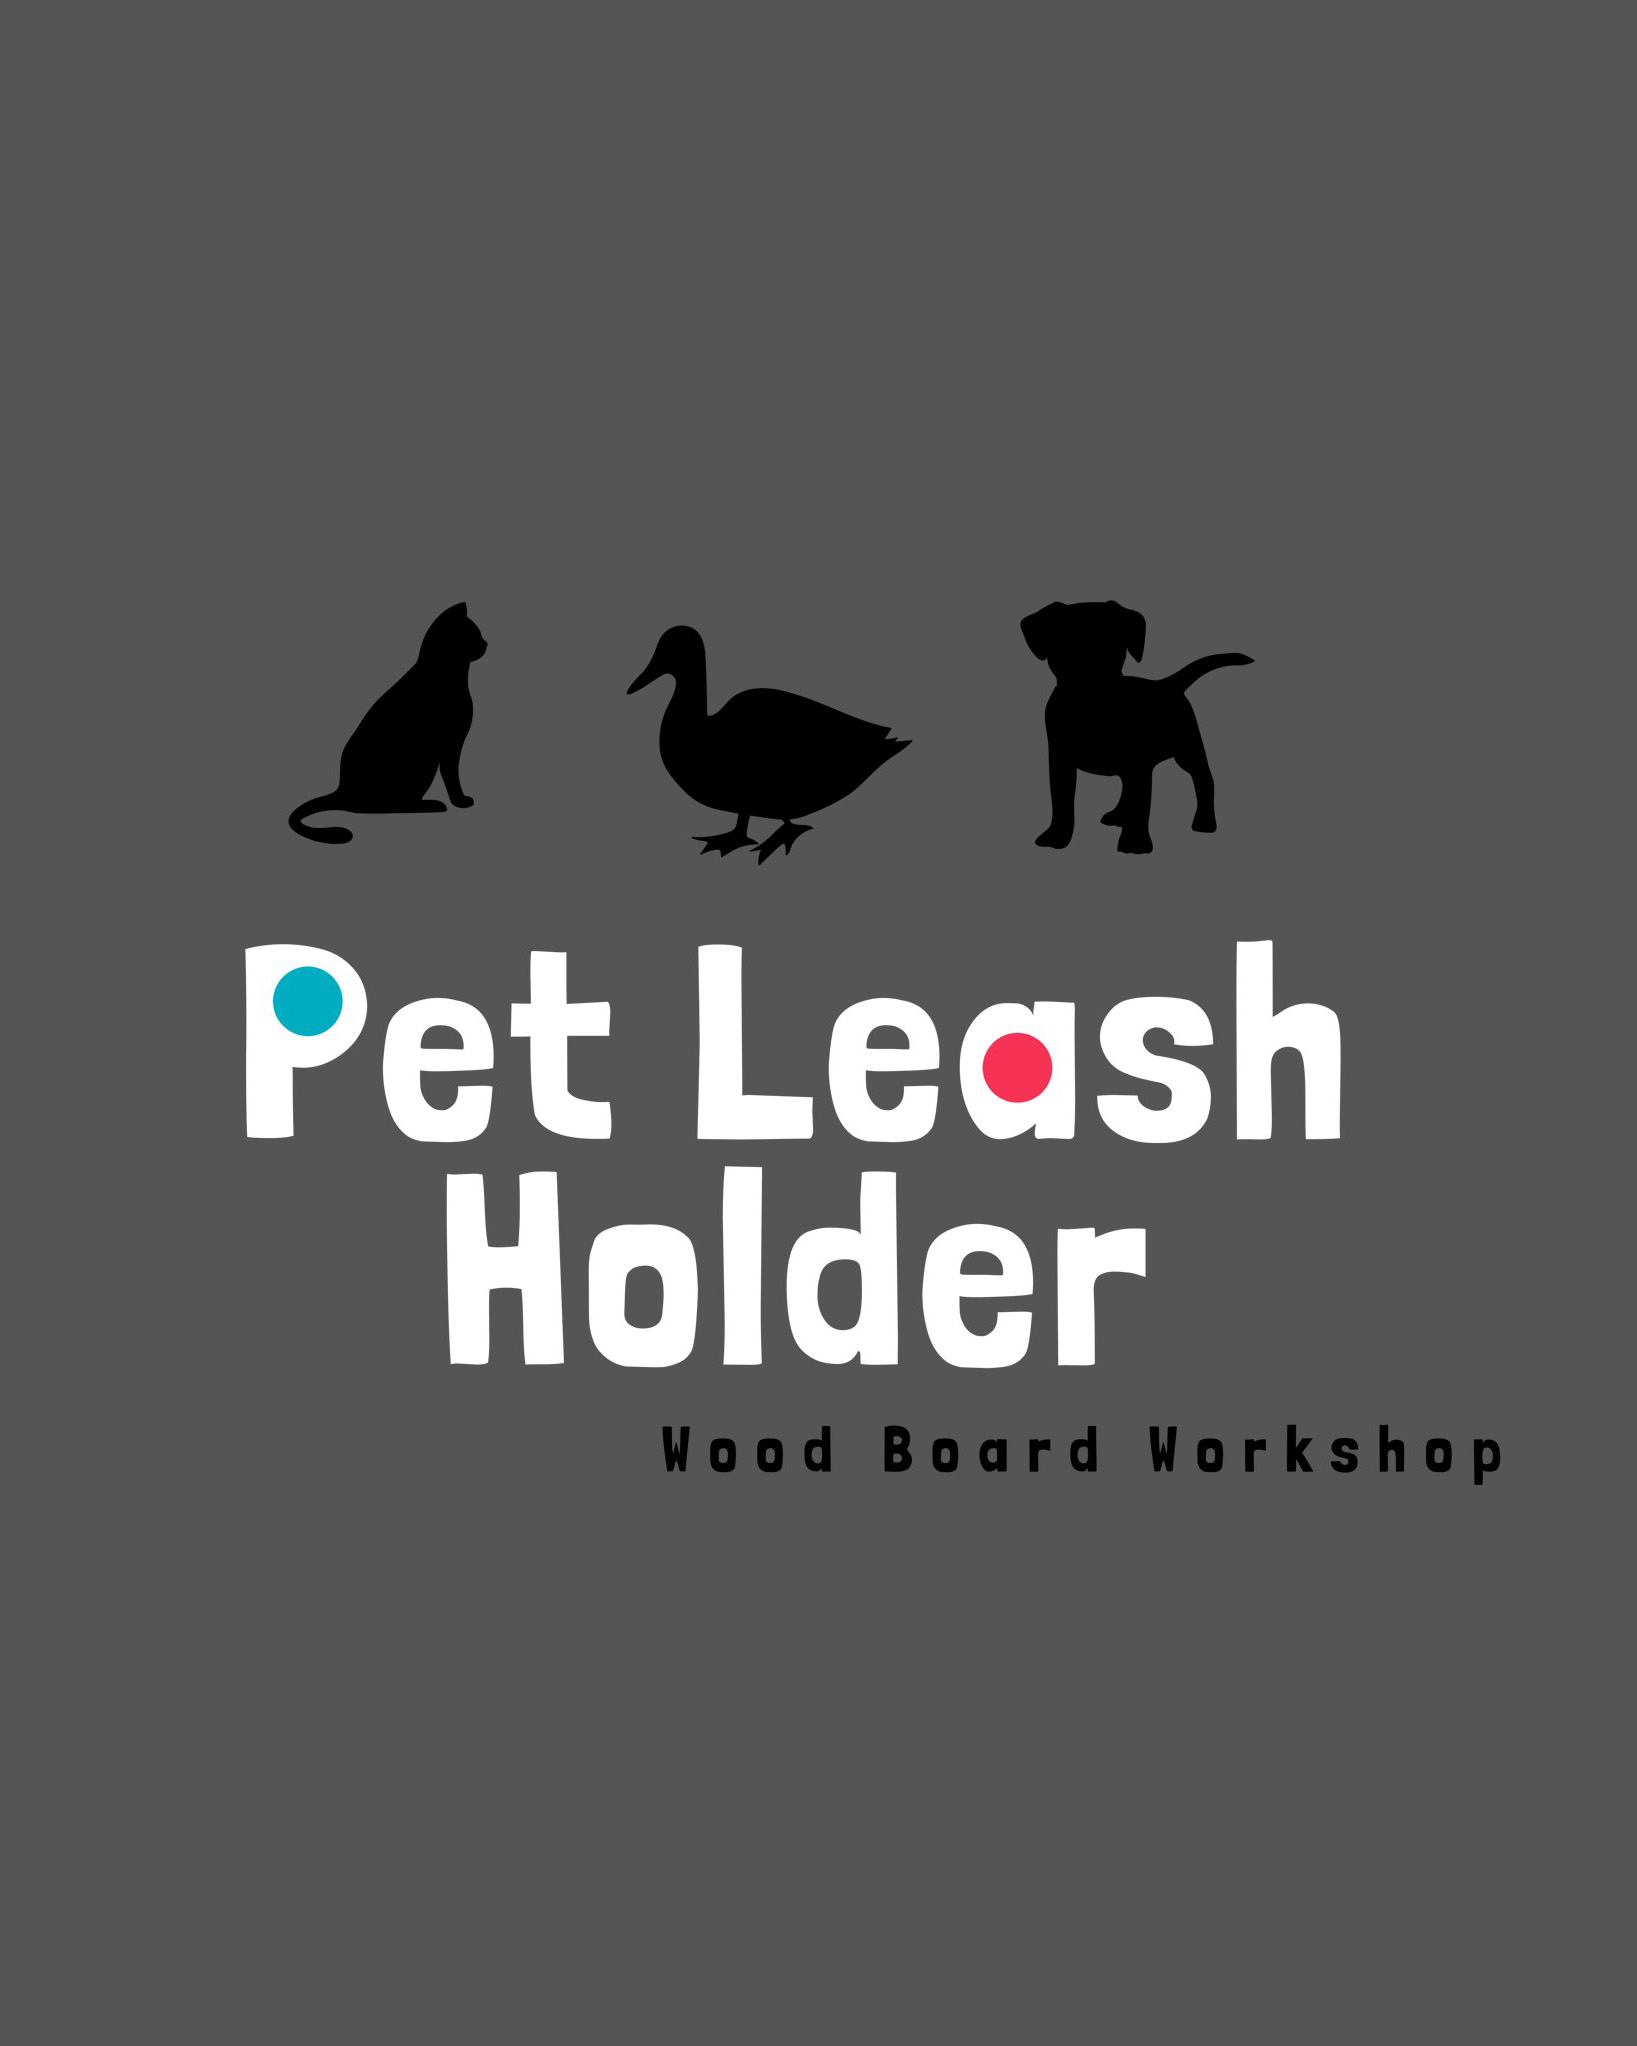 Make Your Own Pet Leash Holder